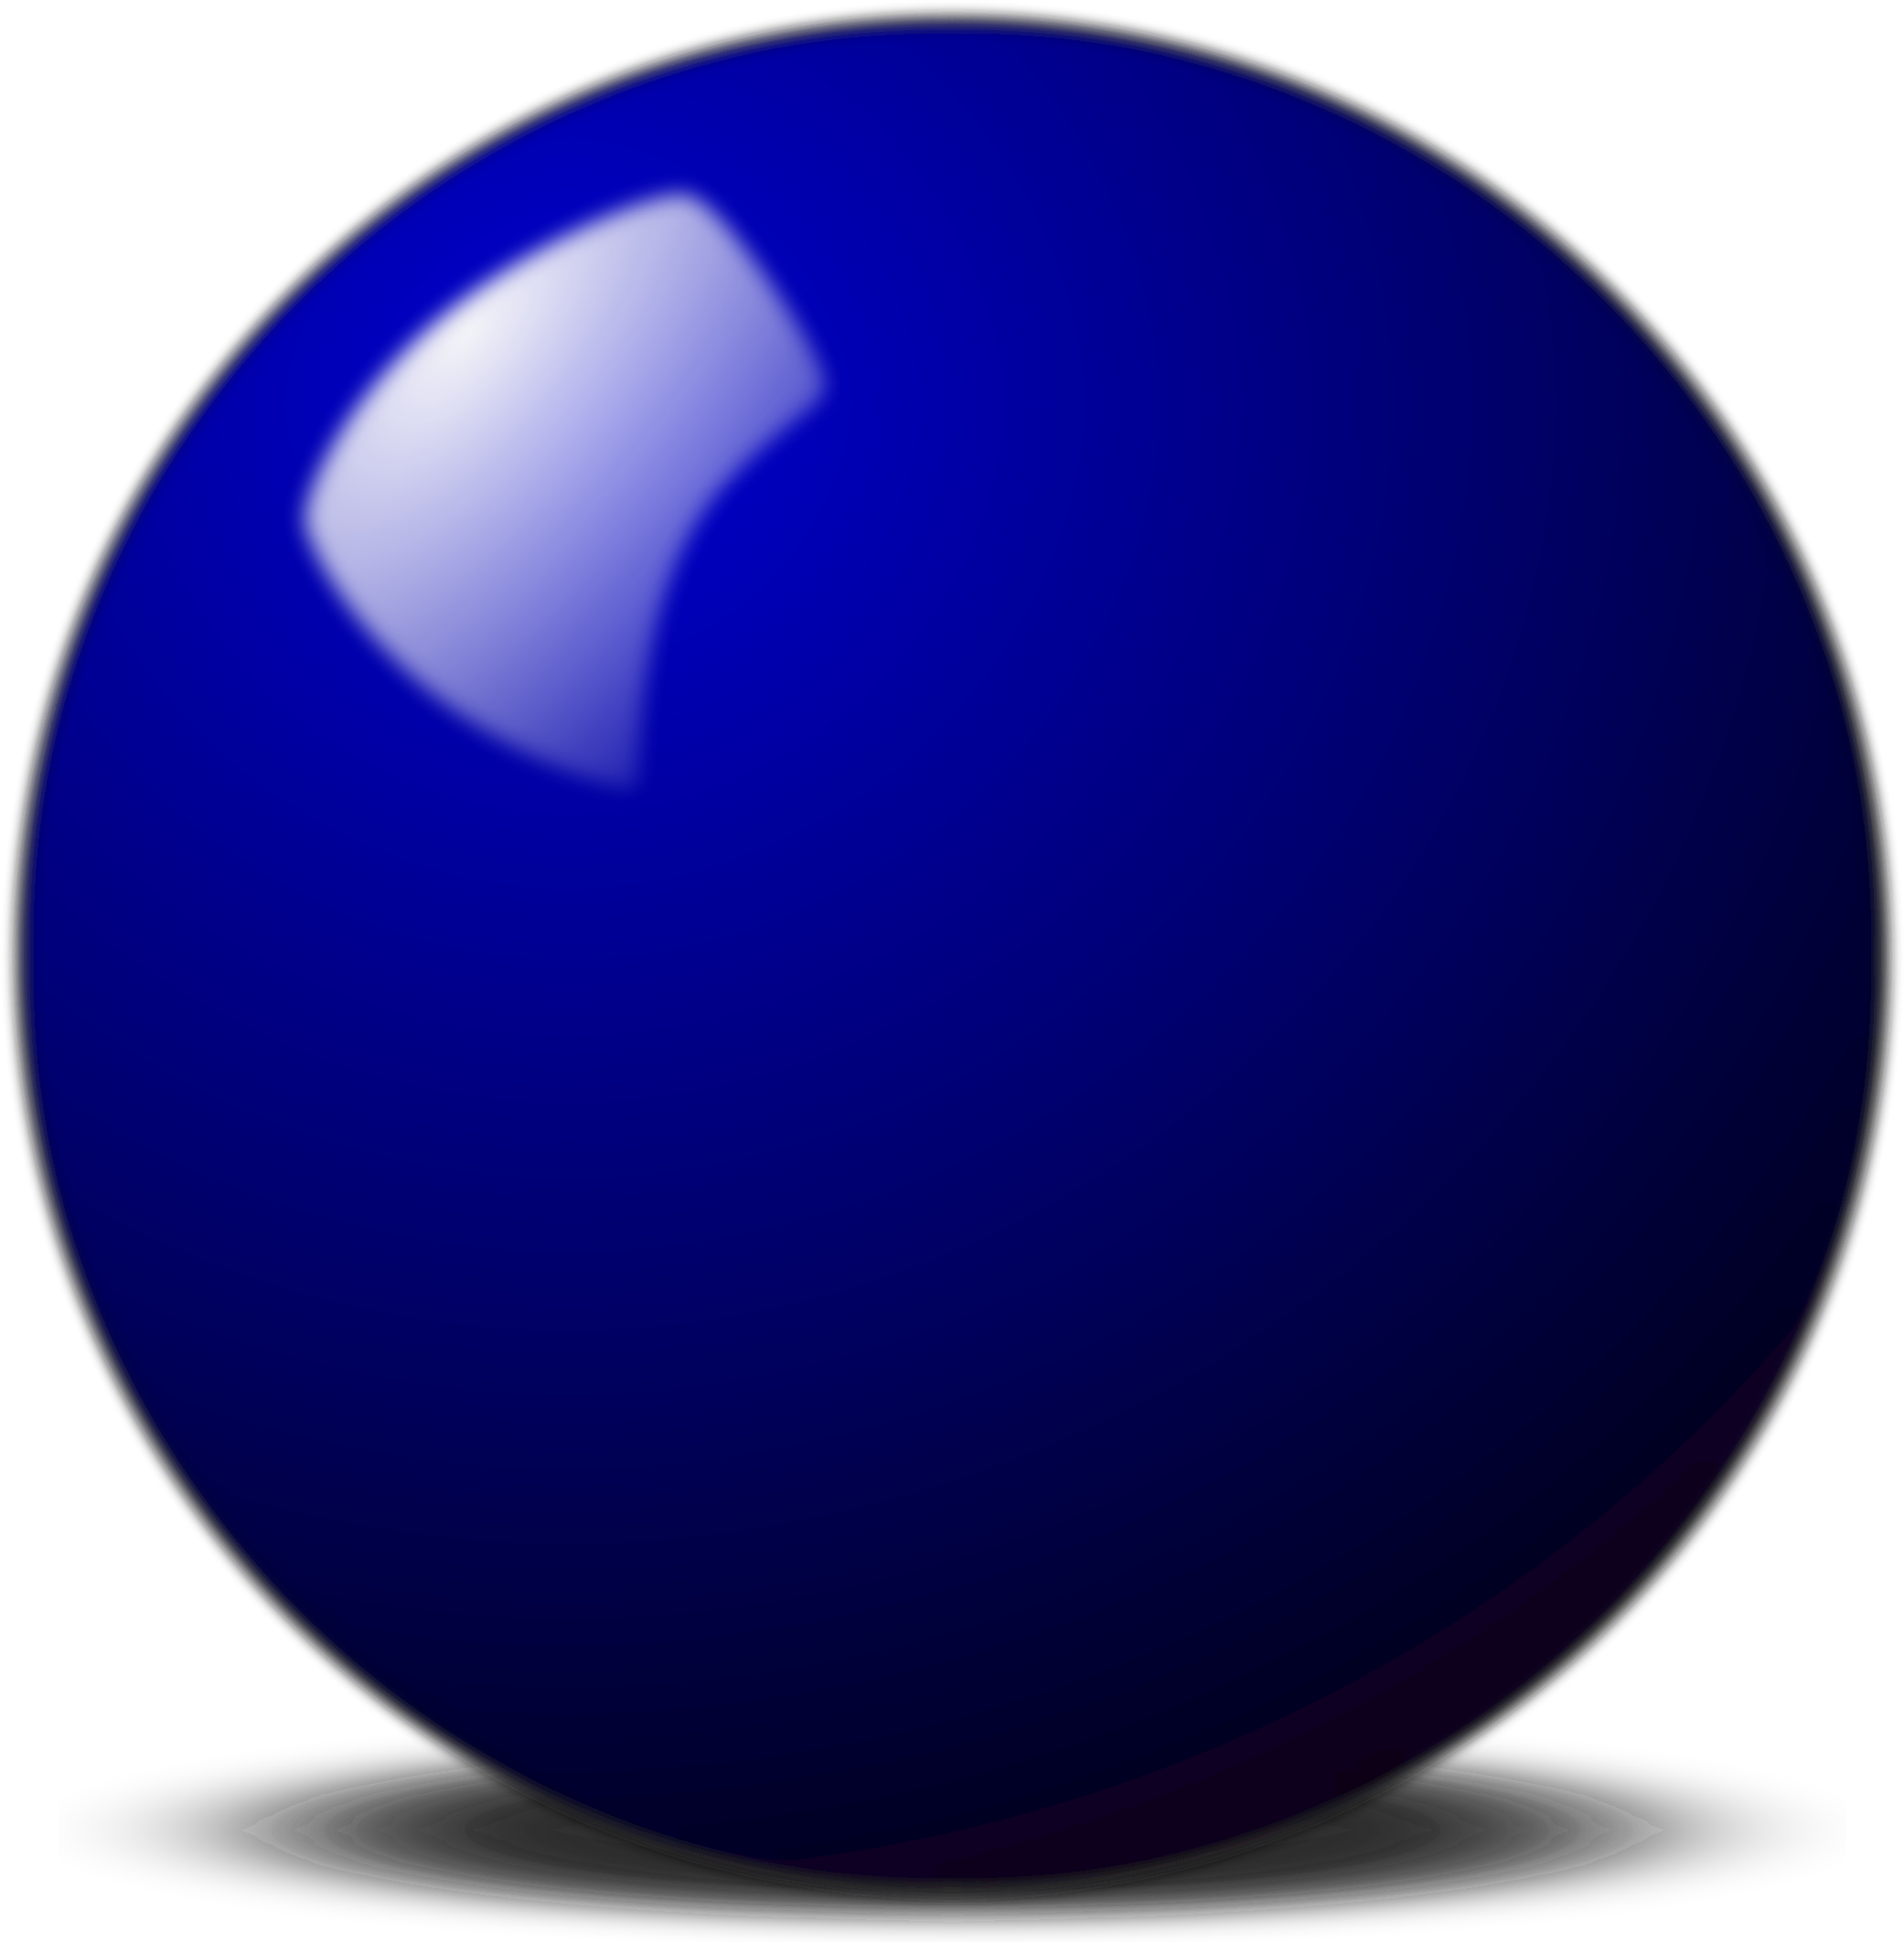 Blue snooker ball vector clipart image free stock photo - Ball image download ...